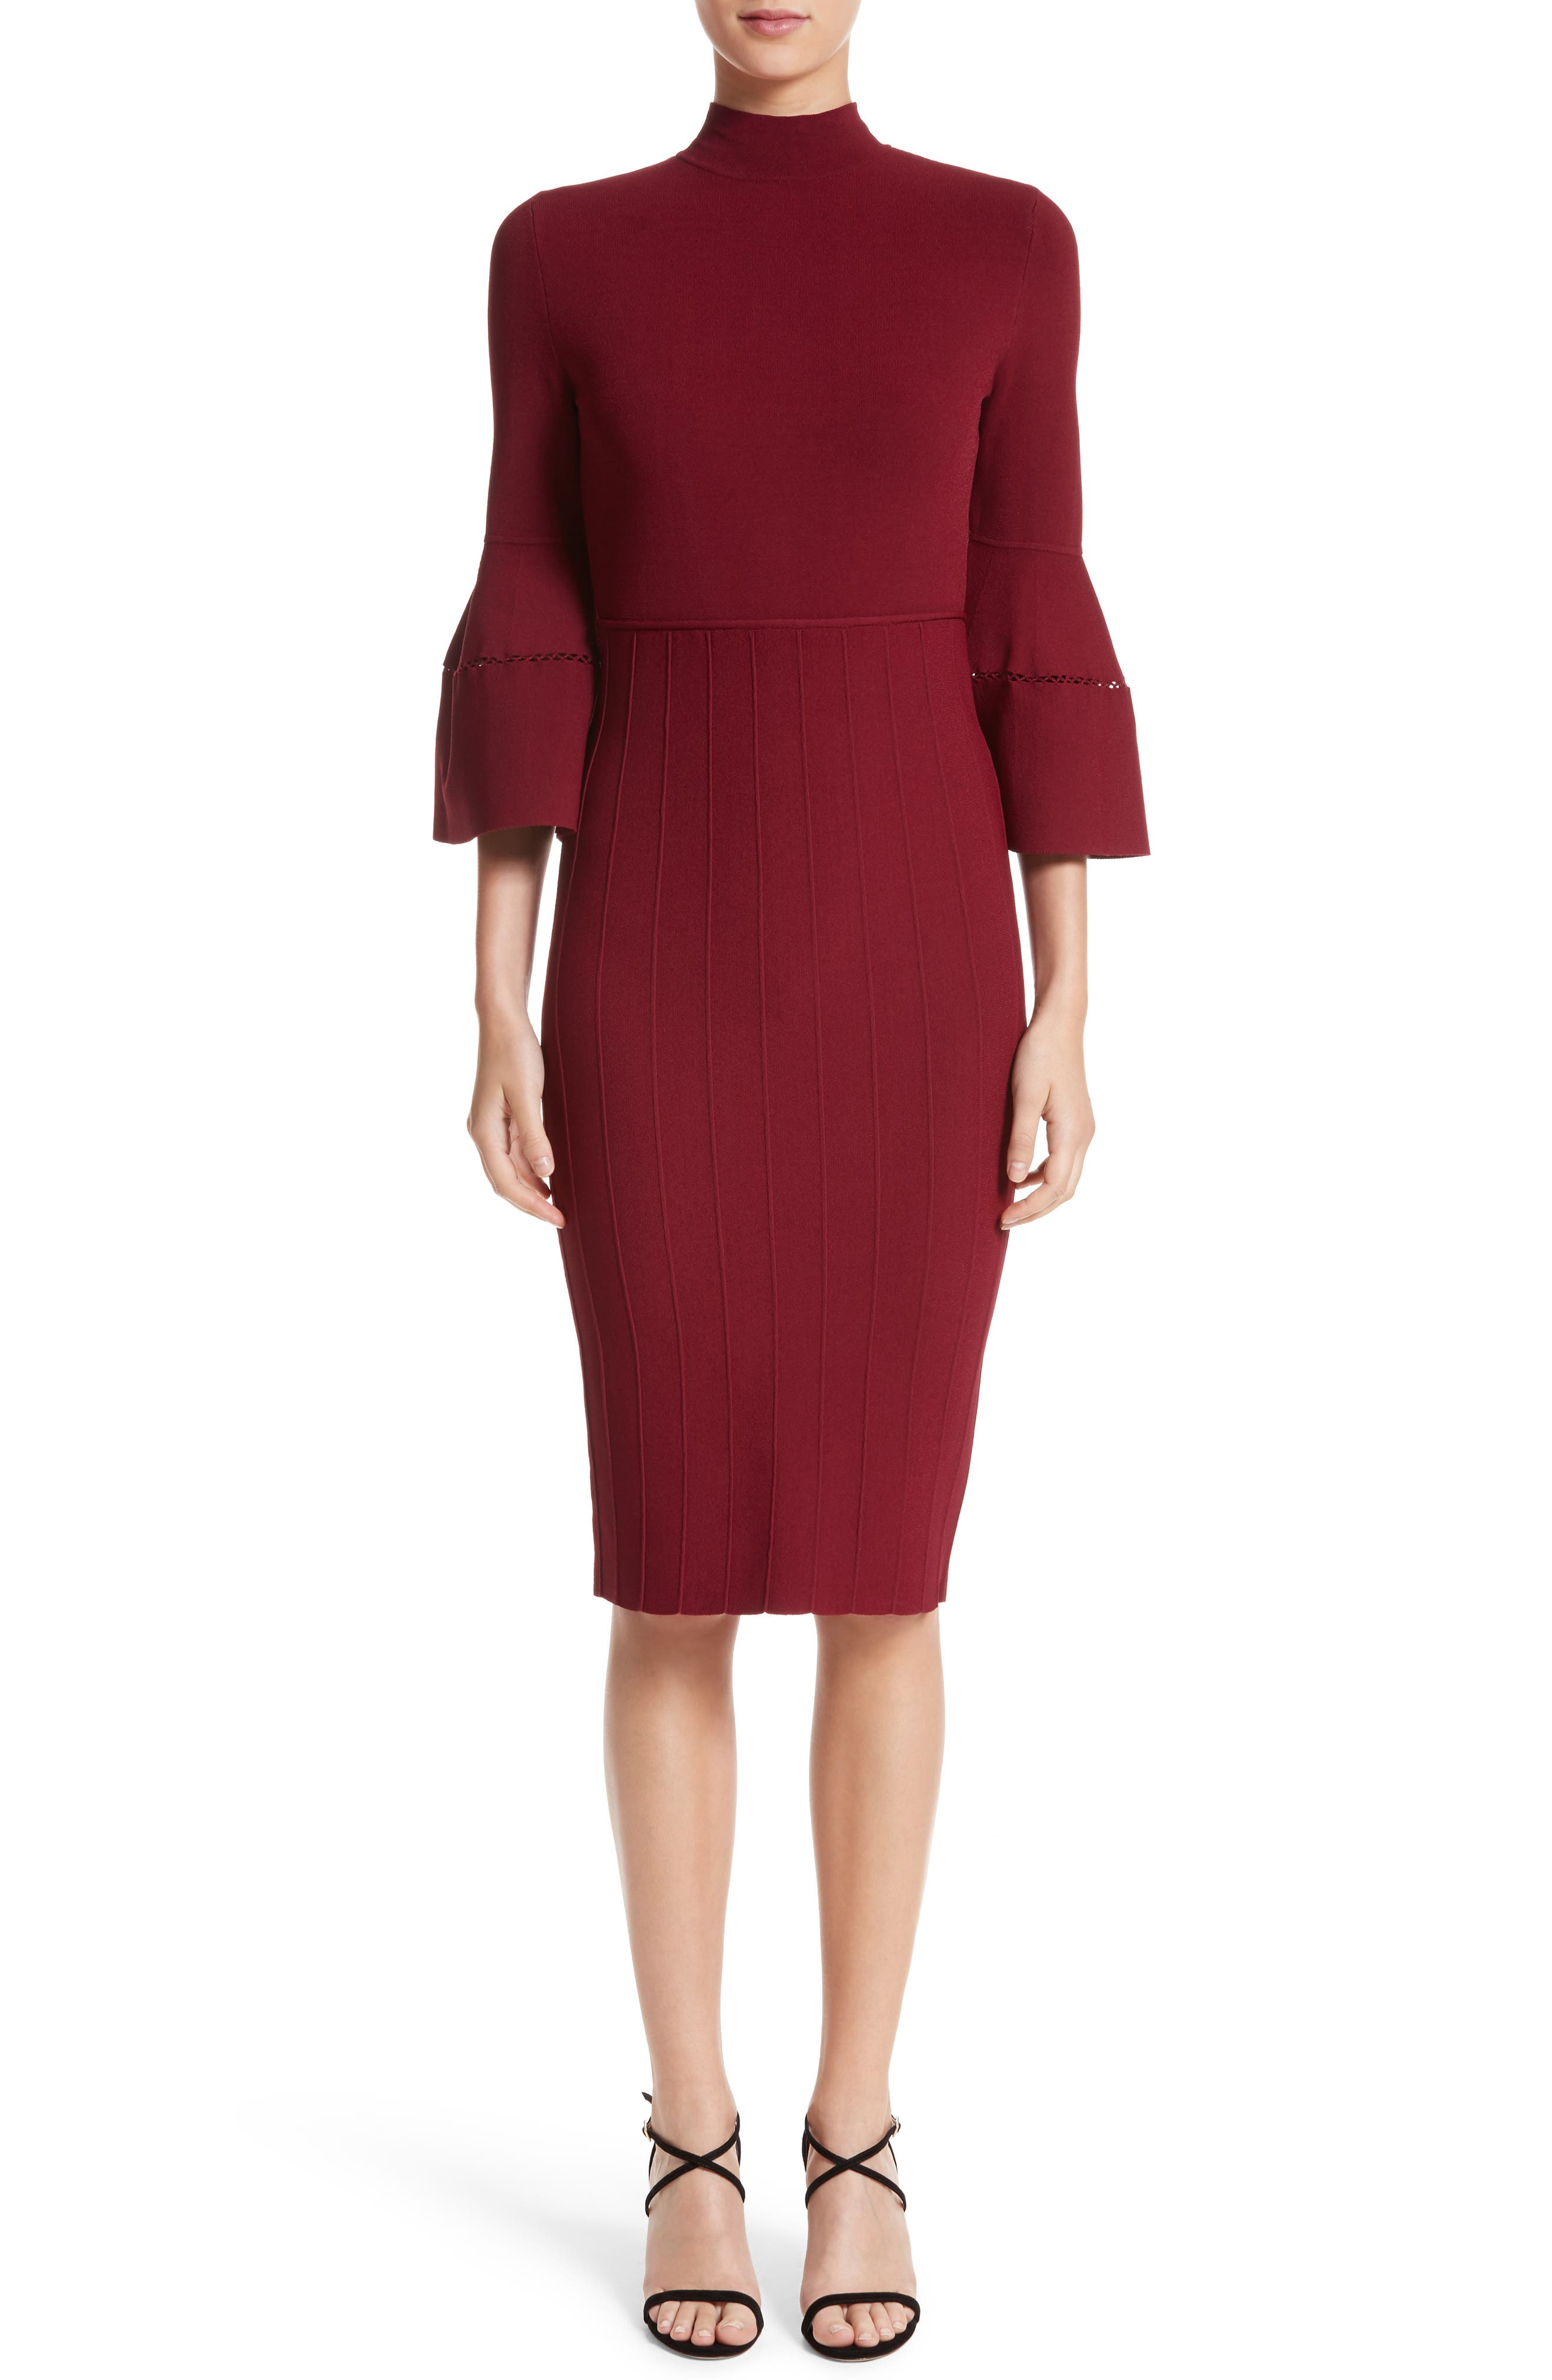 Lela Rose Knit Bell Sleeve Dress